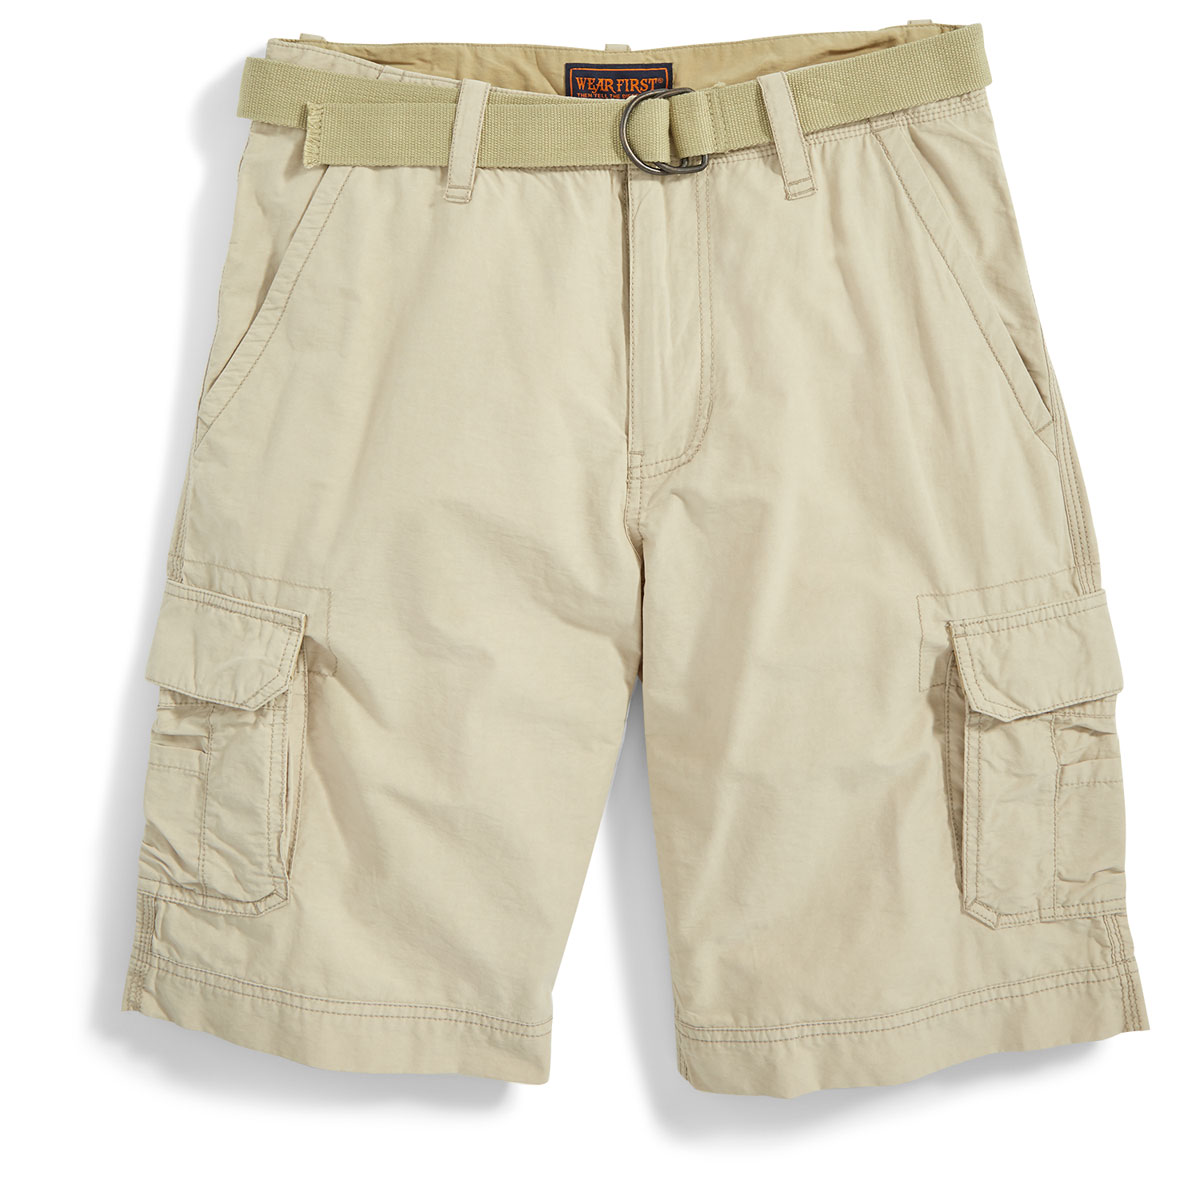 Wear First Guys' Belted Cargo Shorts - White, 29